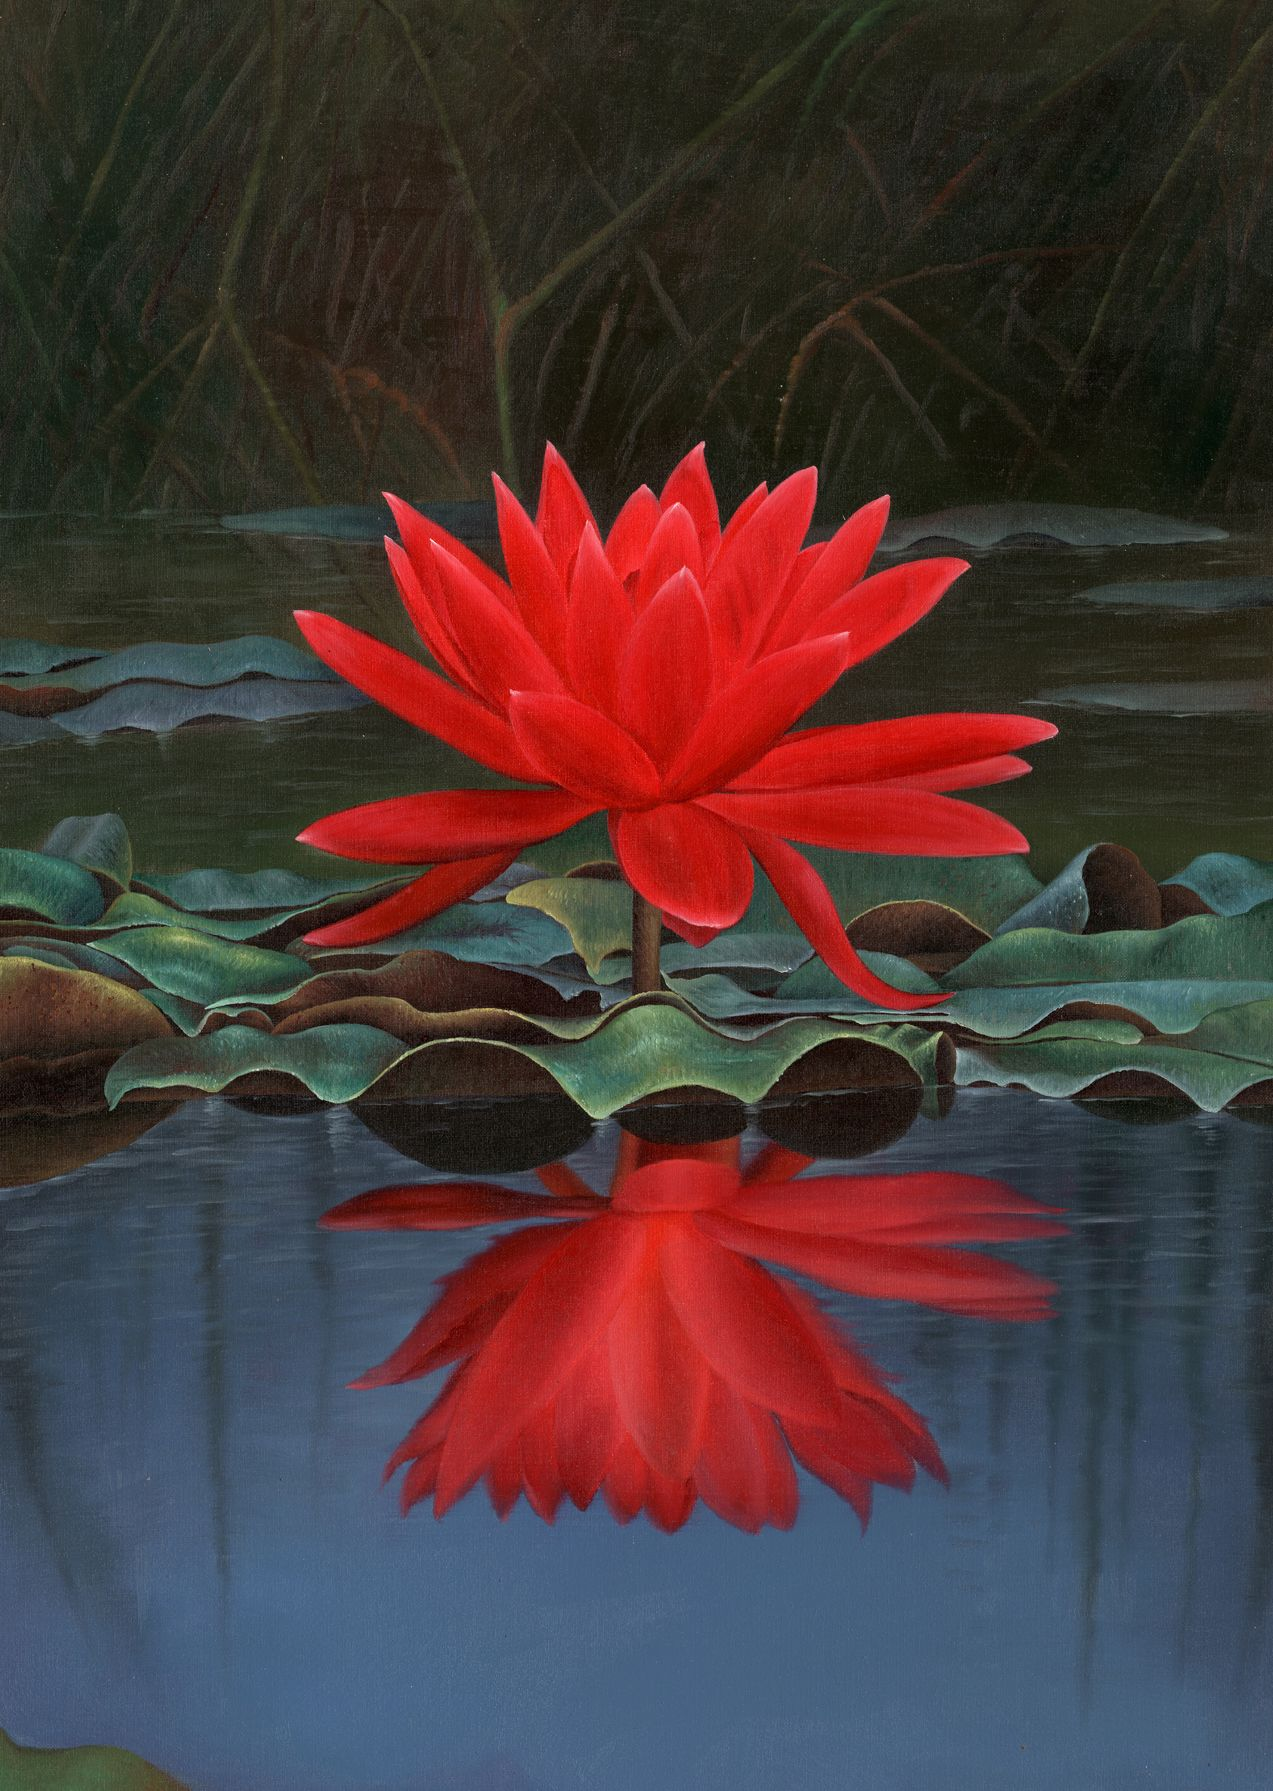 Exotic Flower Photos Free Exotic Red Lotus Flower Free Wallpaper